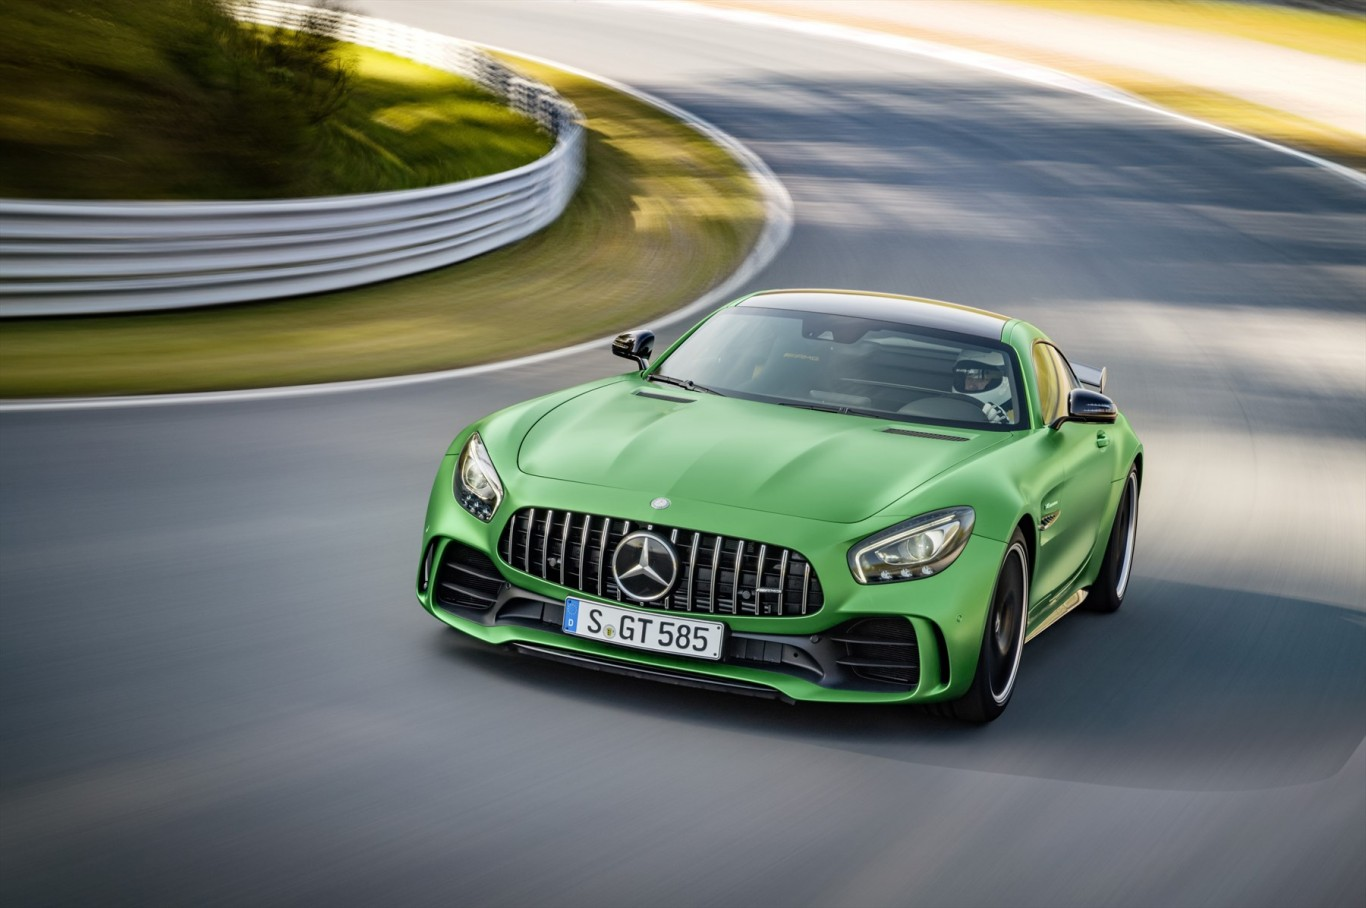 The new Mercedes-AMG GT R